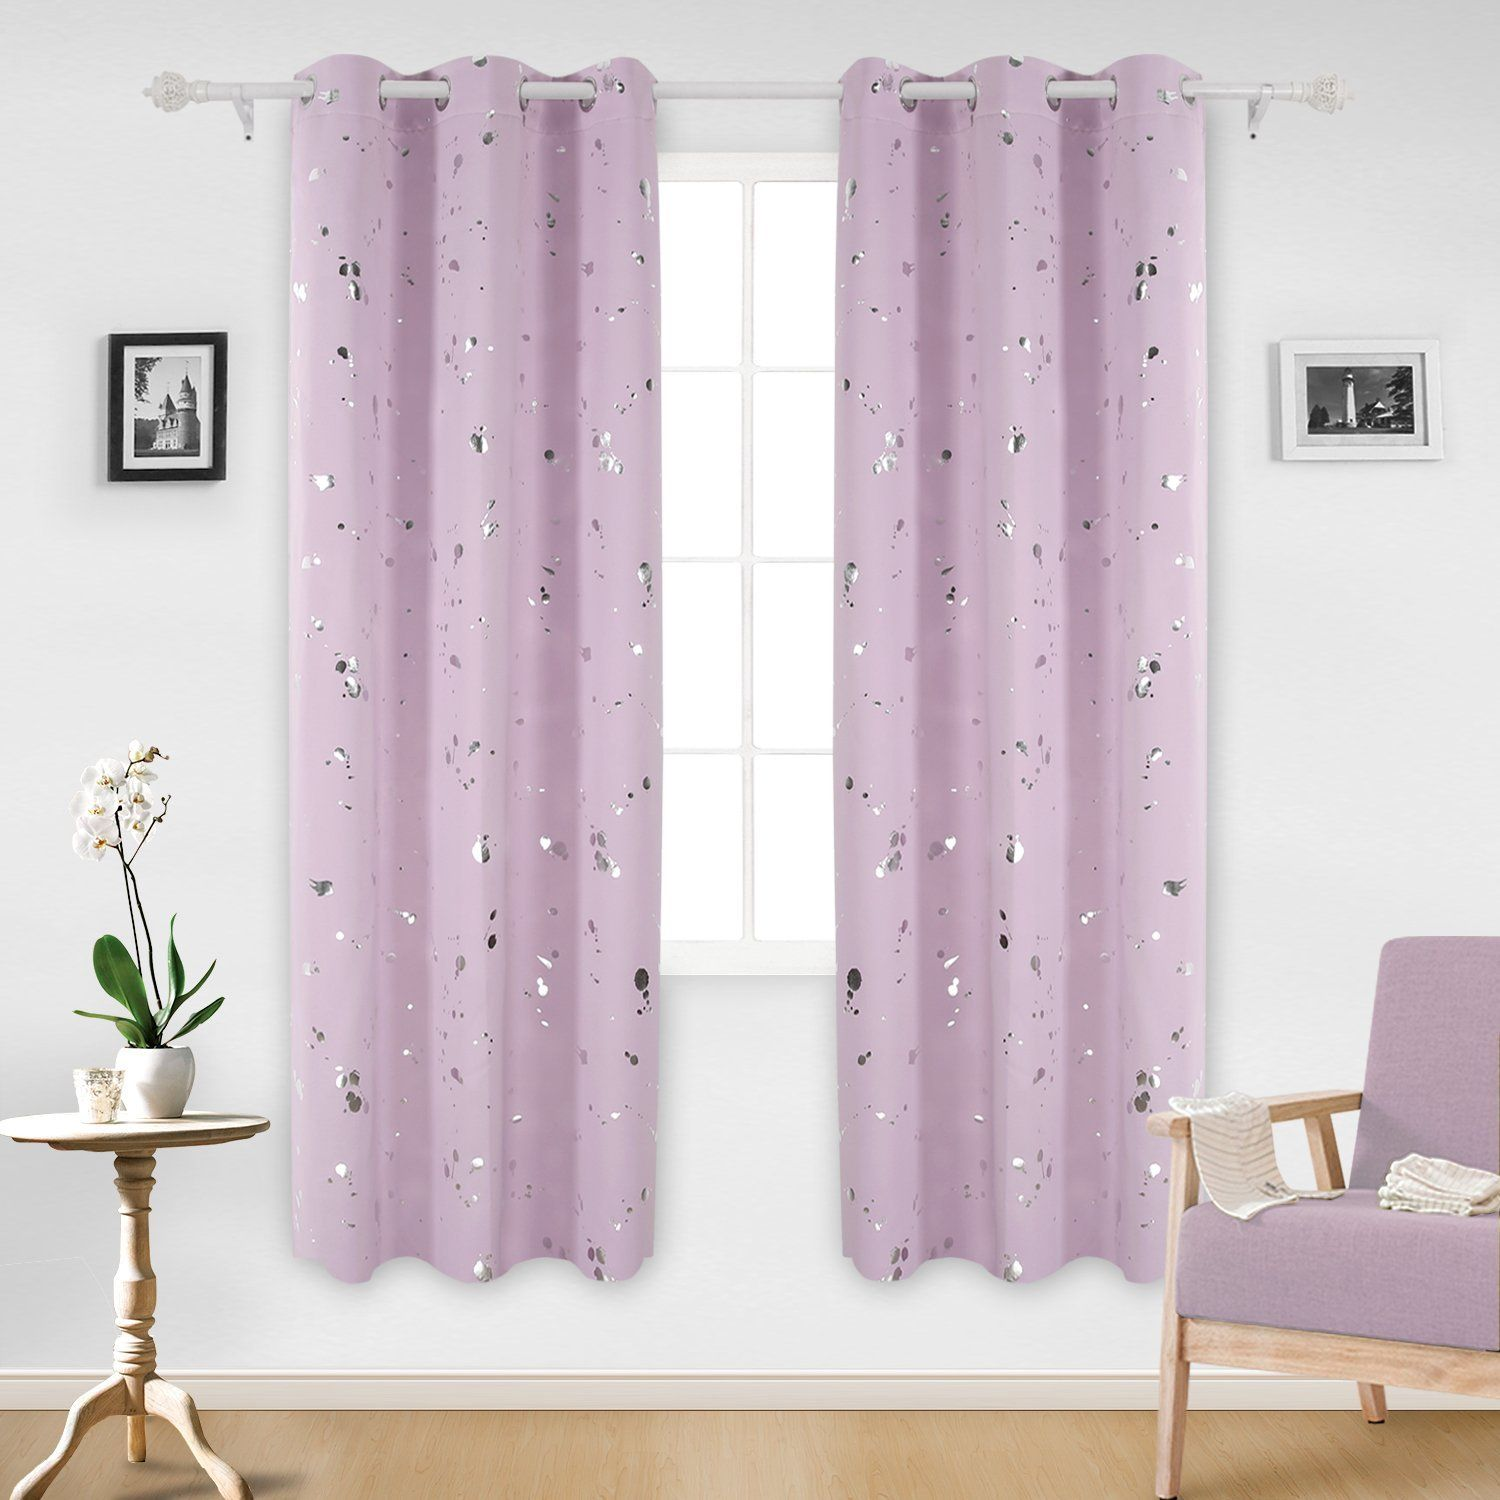 homemade breathtaking distinguished teens shabby gh also color to for fish girls curtainschs curtains pertaining impressive ruffled shower ruffle pink fabric patterns merge room curtain